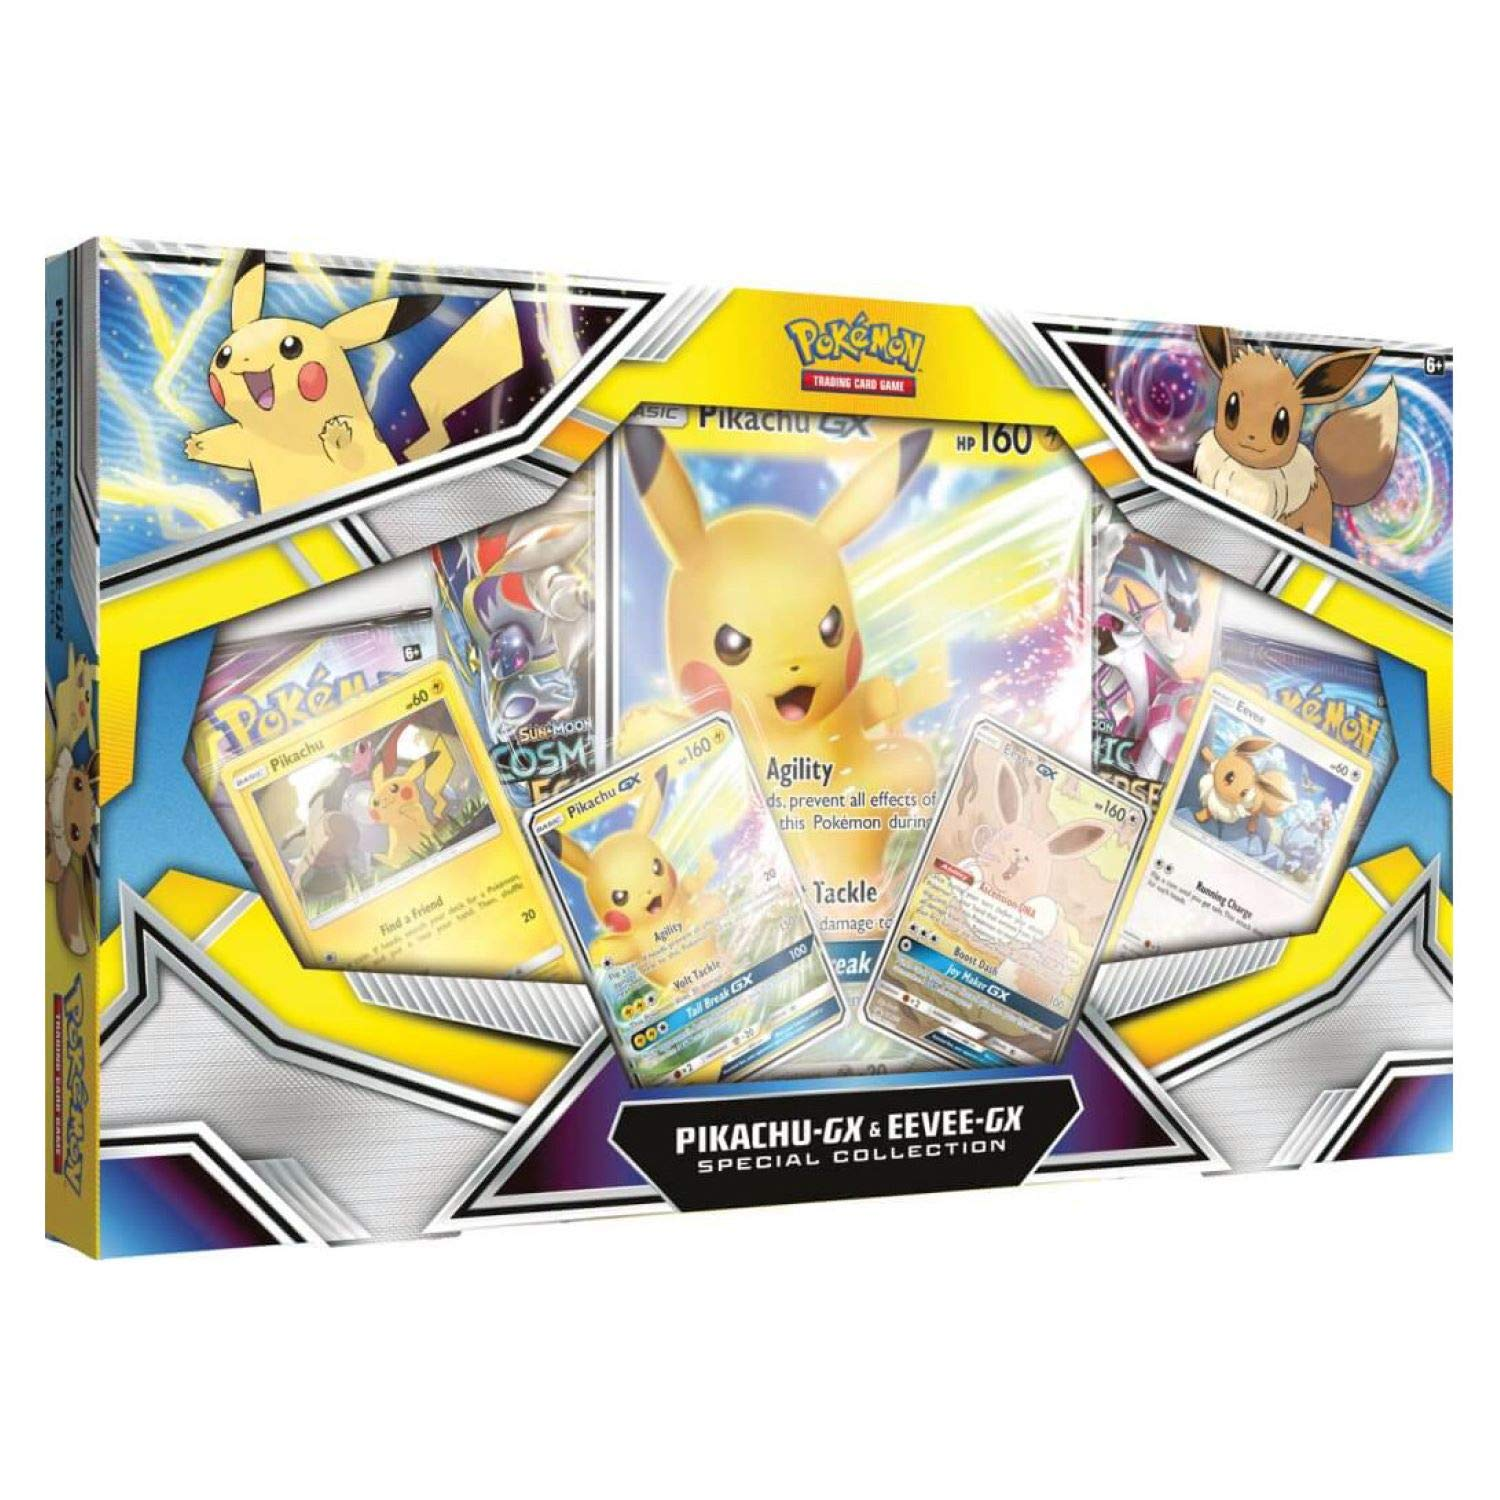 Pokemon TCG: Pikachu-Gx & Eevee-Gx Special Collection, Multicolor (820650807770)